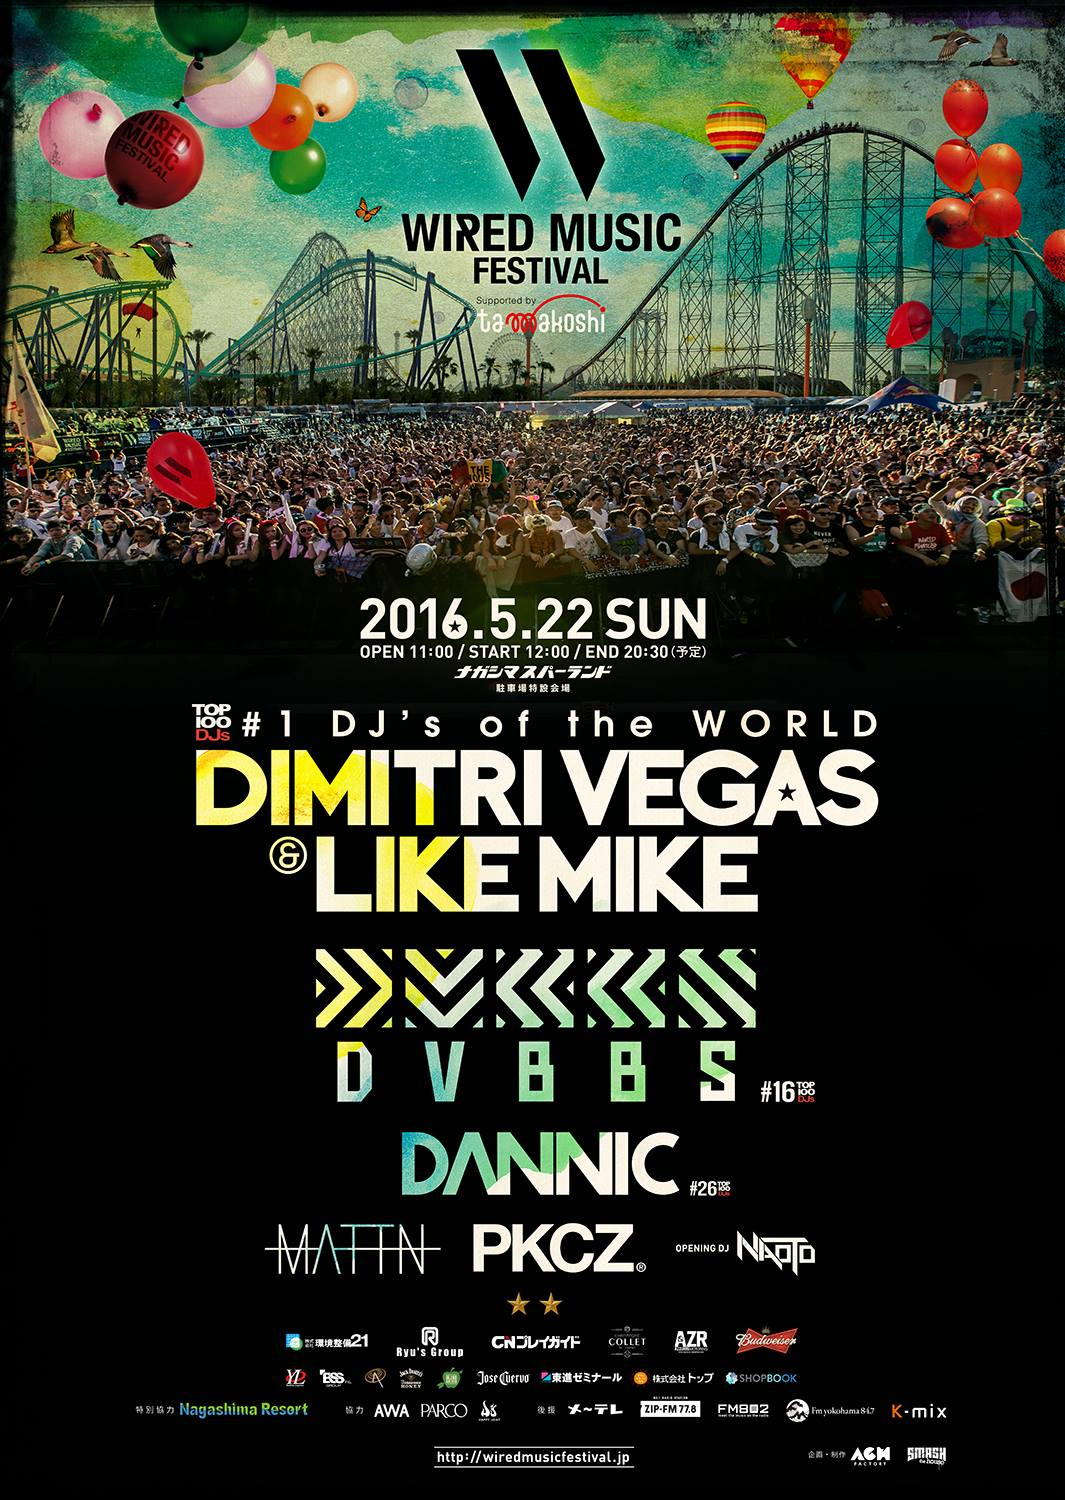 WIRED MUSIC FESTIVAL 2016 FIX